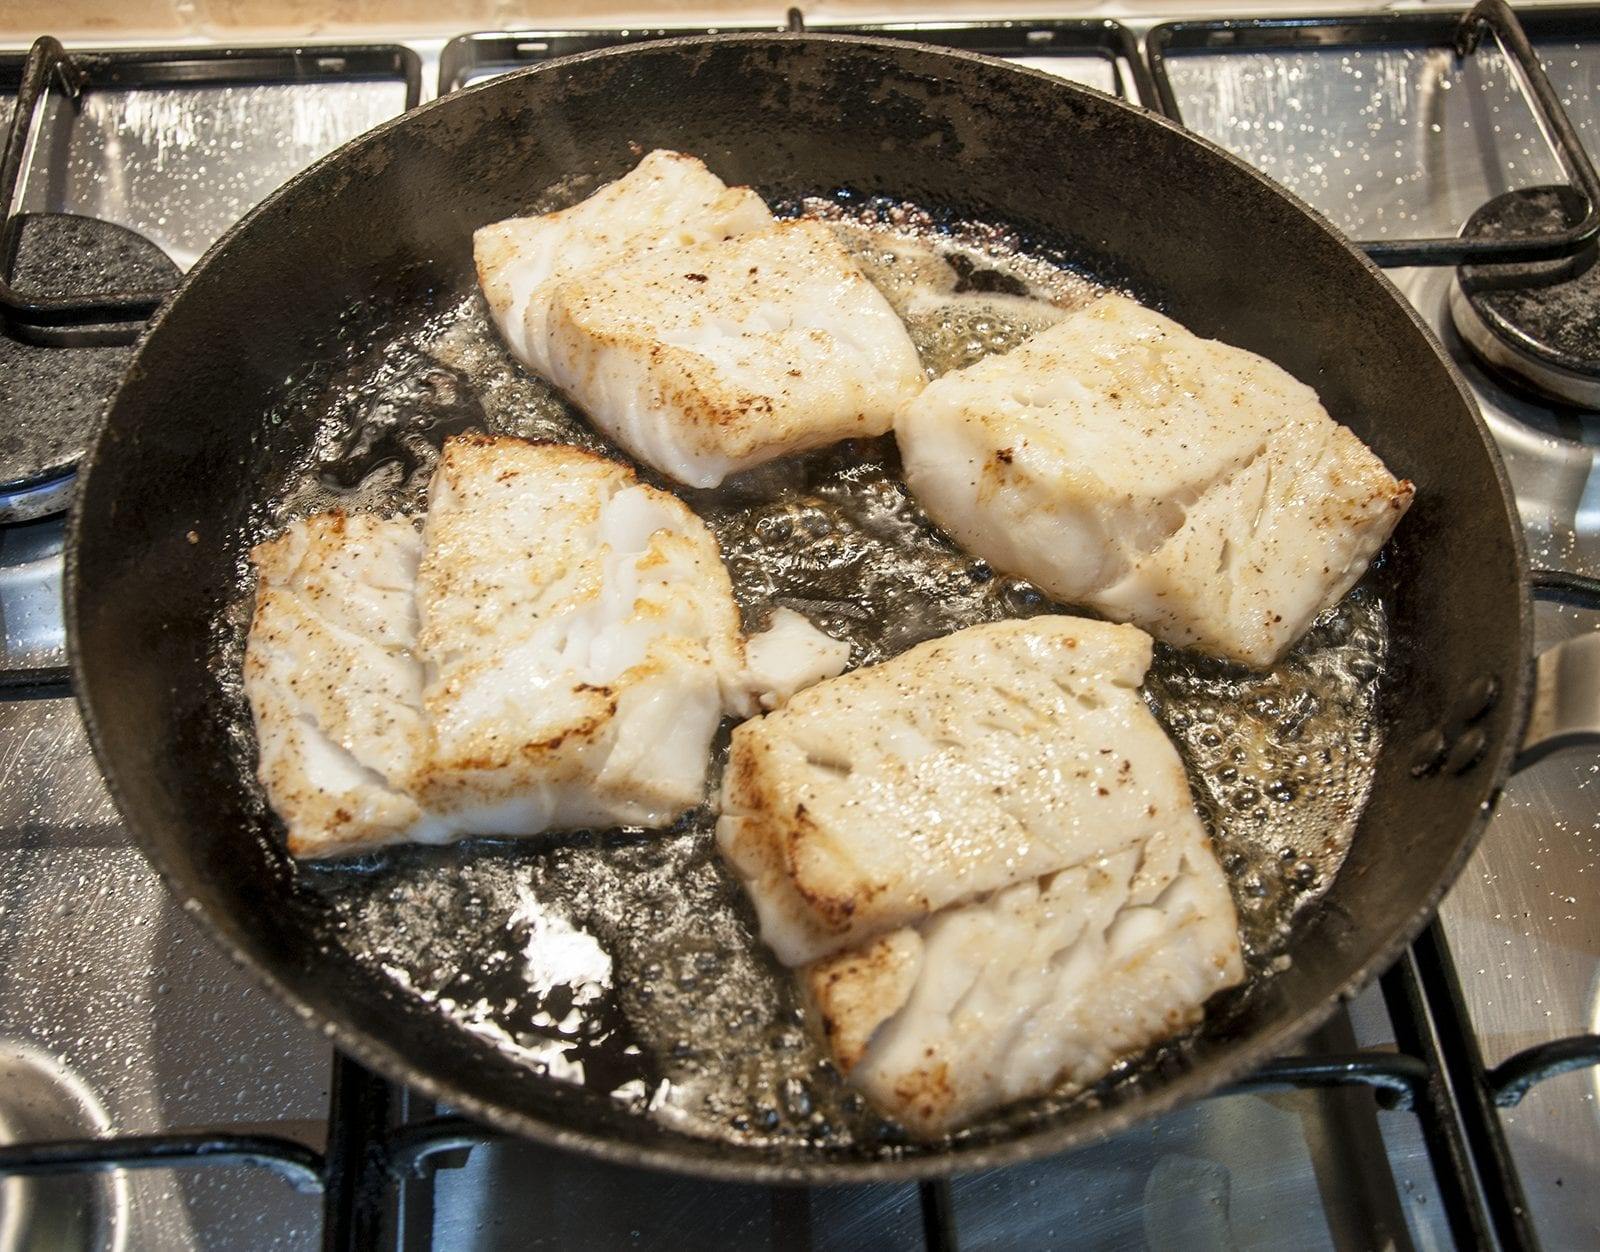 Pan fried cod with classic beurre blanc sauce. This is a fantastic recipe and very versatile with how it can be served. I placed the cod on a potato rosti and topped it with samphire. Seafood with vegetables from the sea. Yum!   https://theyumyumclub.com